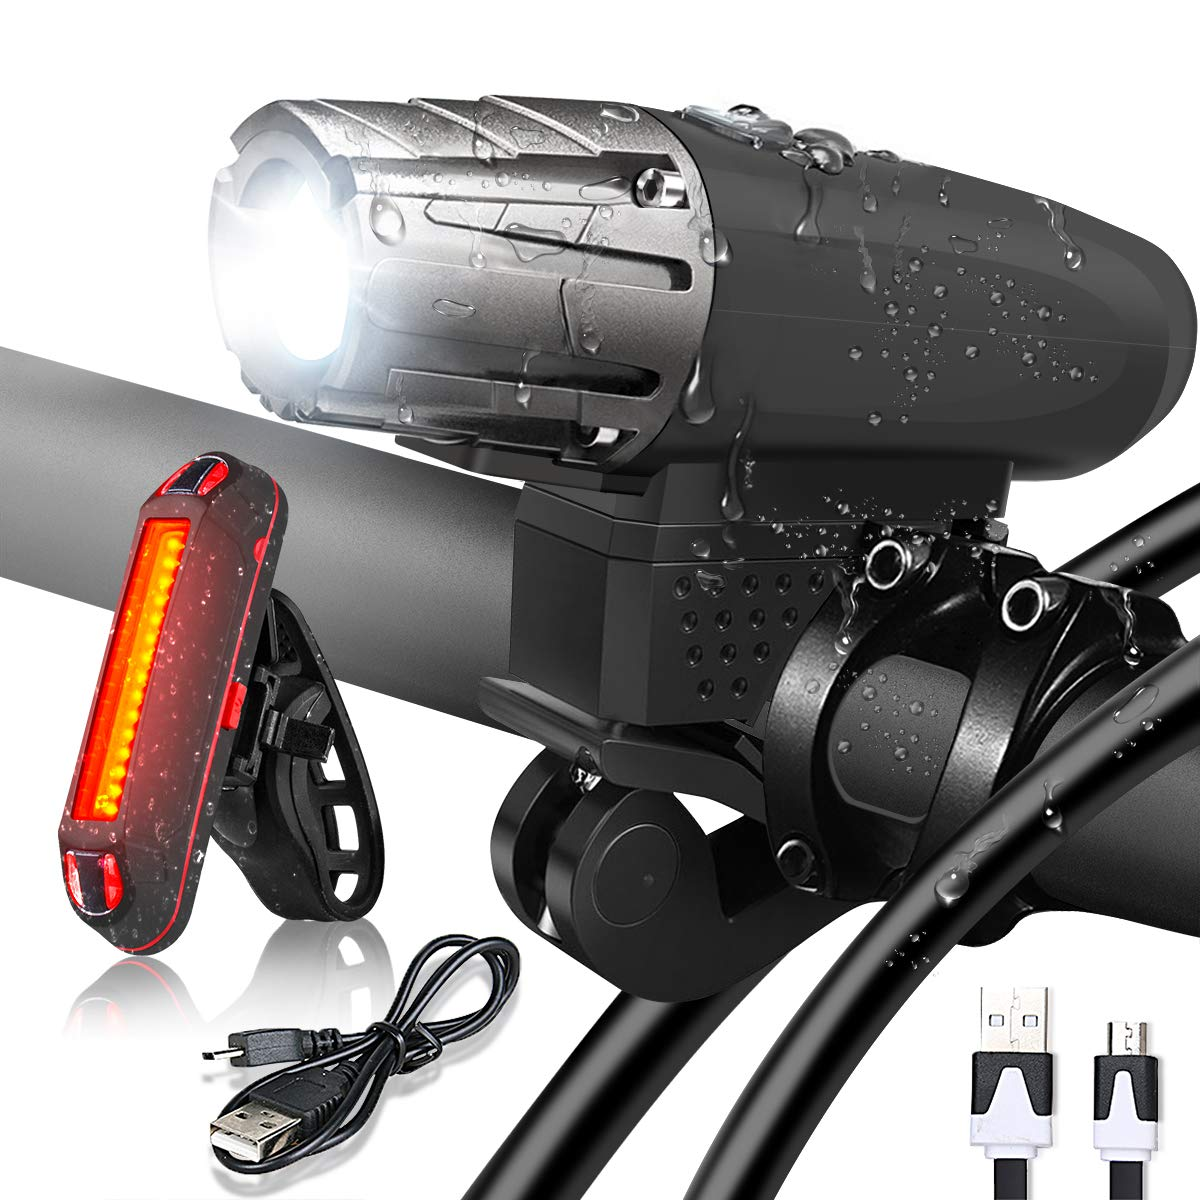 Bike Light - USB Rechargeable Bicycle Light Set - Super Bright LED Headlights and Tail Lights for Mountain Bike and Road Bike Cycling Safety - Fits for Hybrid, Road, MTB for Night Sports